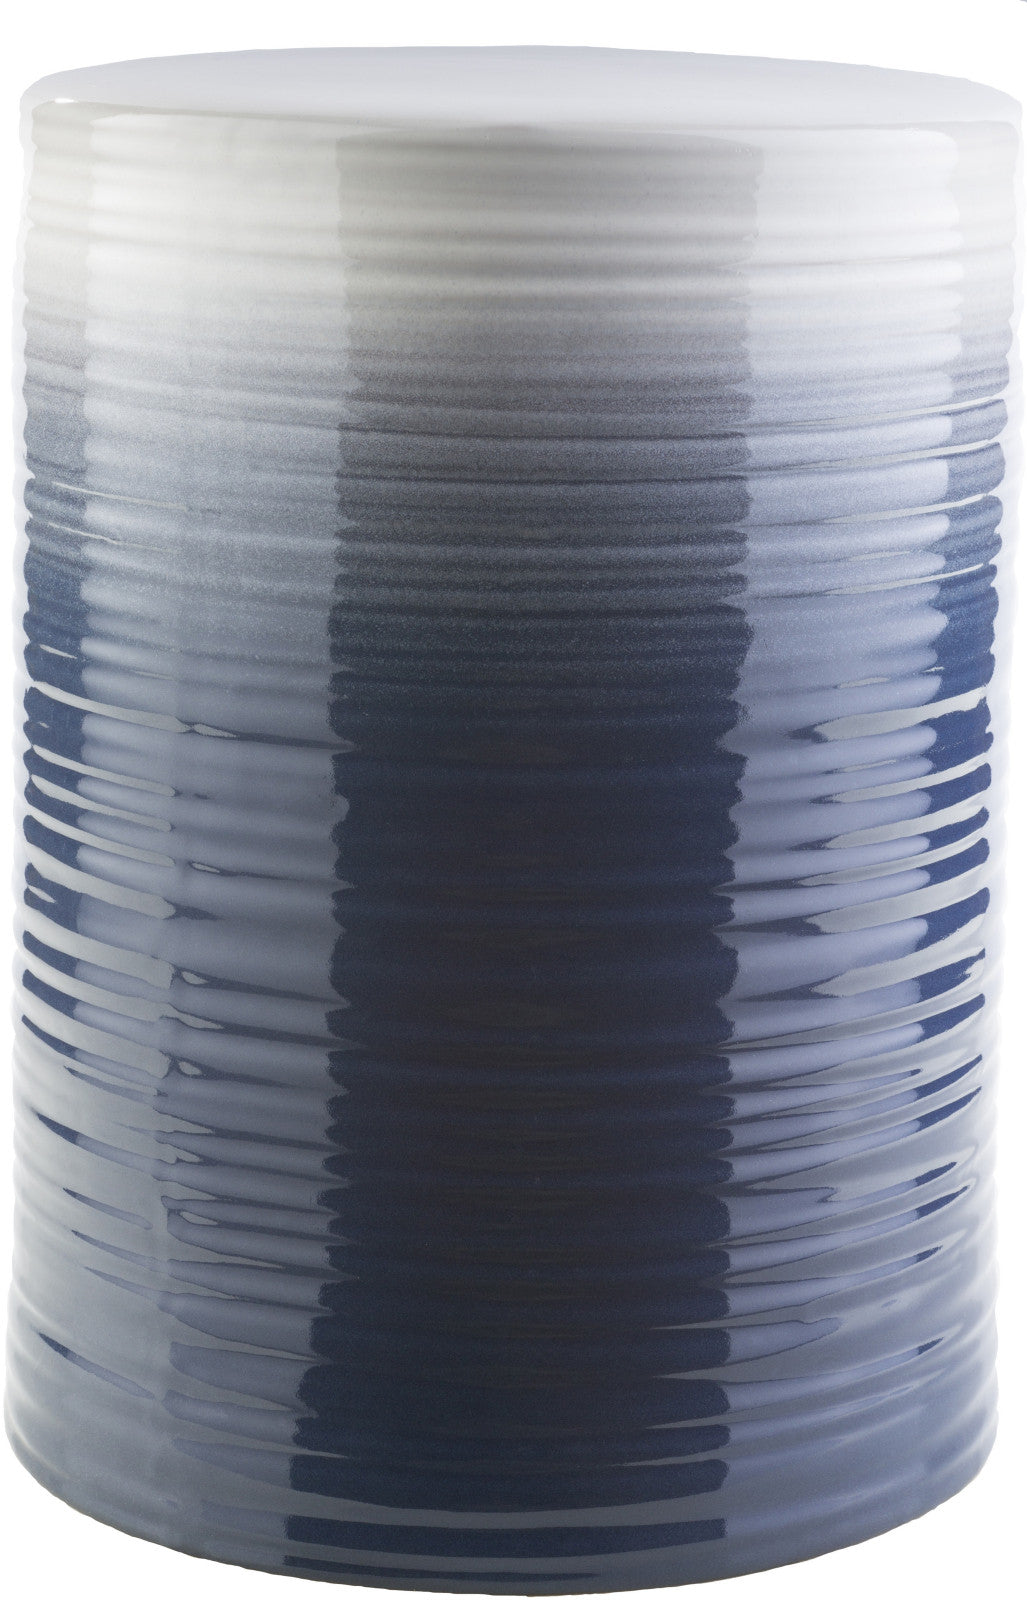 Surya Waverly WAV-326 Vase main image